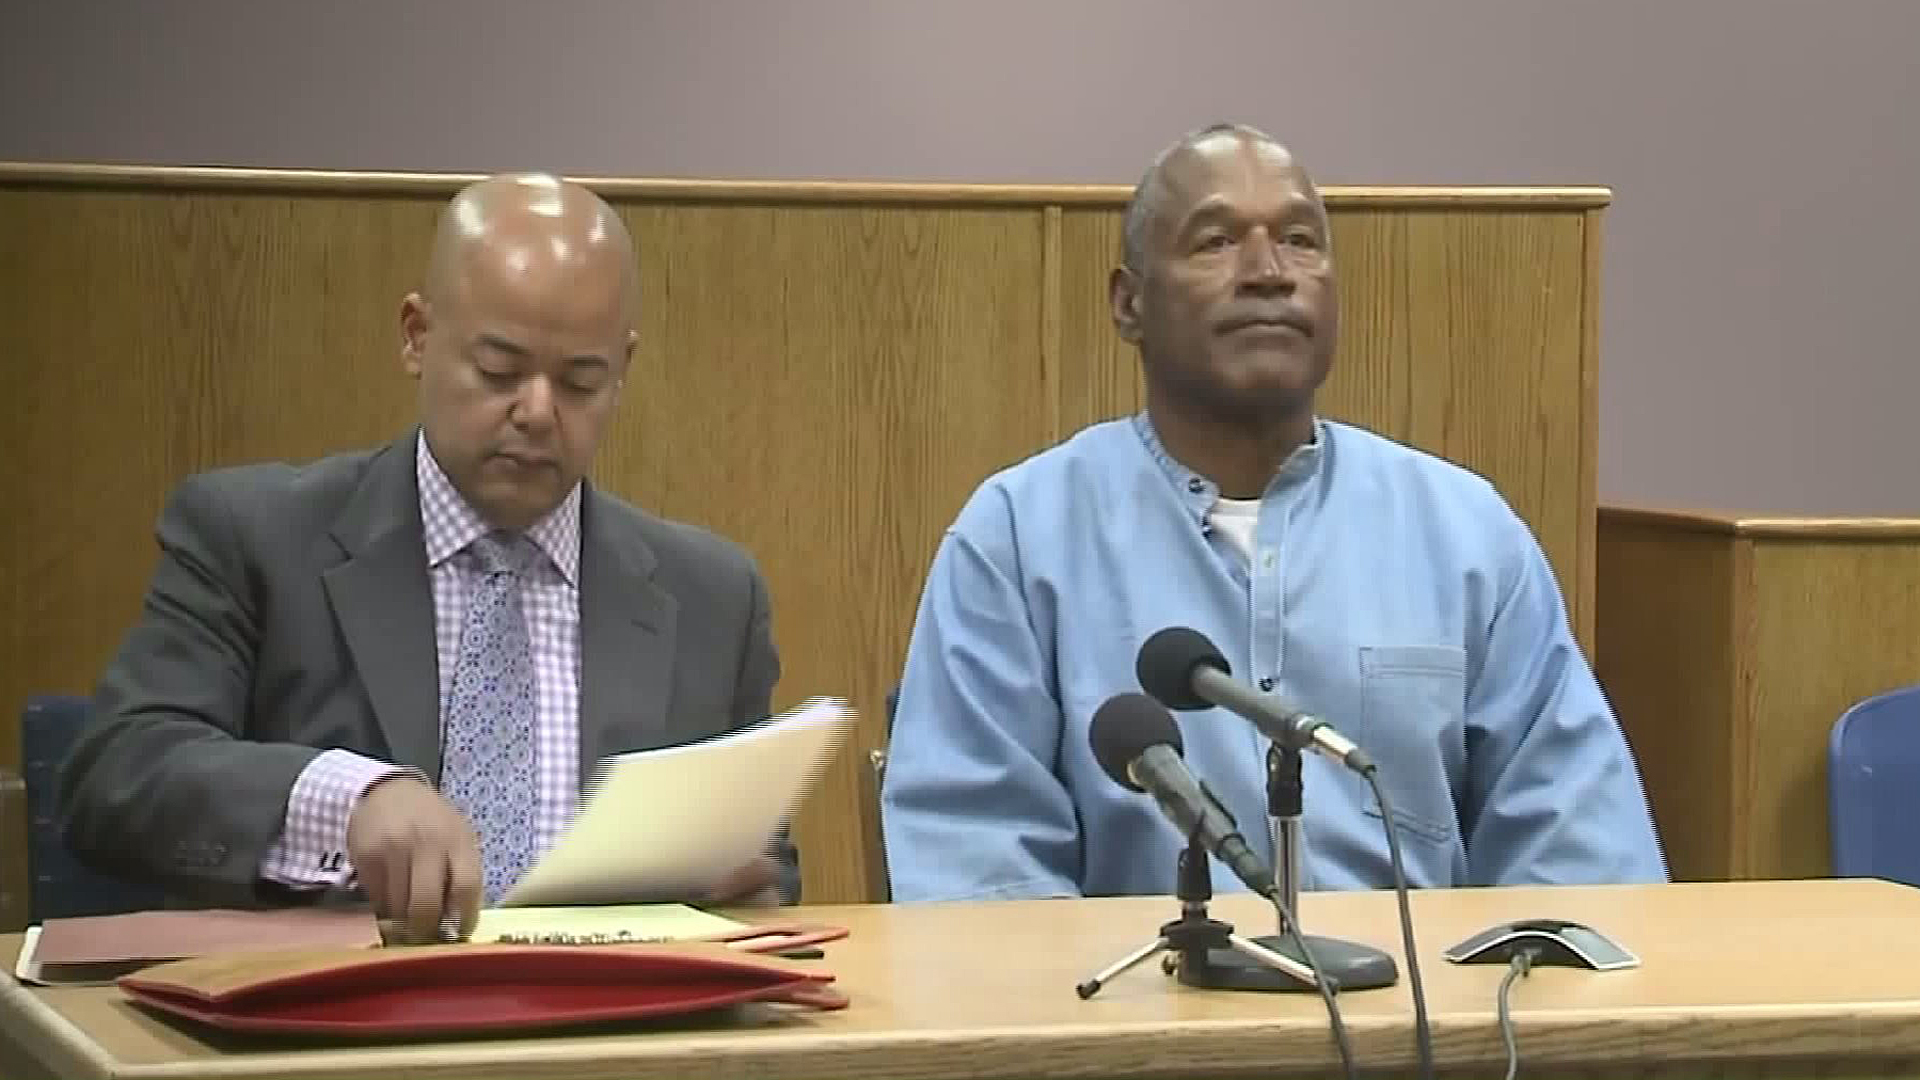 O.J. Simpson appears at a parole hearing on July 20, 2017. (Credit: Pool)